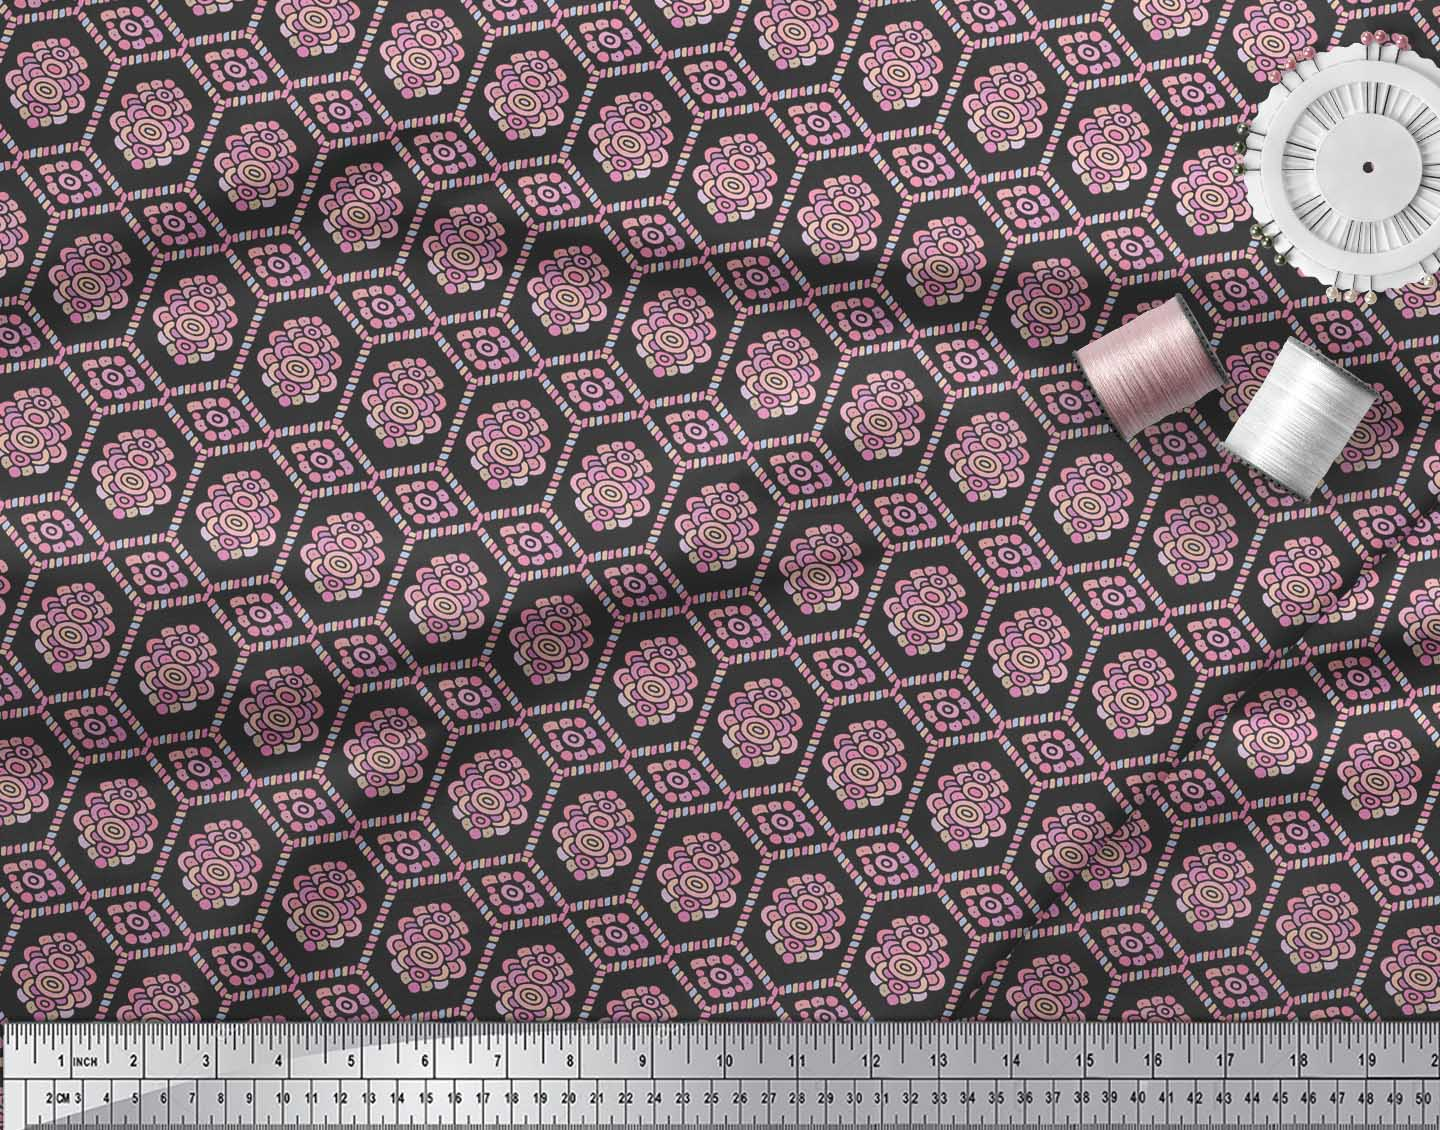 Soimoi-Black-Cotton-Poplin-Fabric-Artistic-Geometric-Print-Fabric-EQ7 thumbnail 3